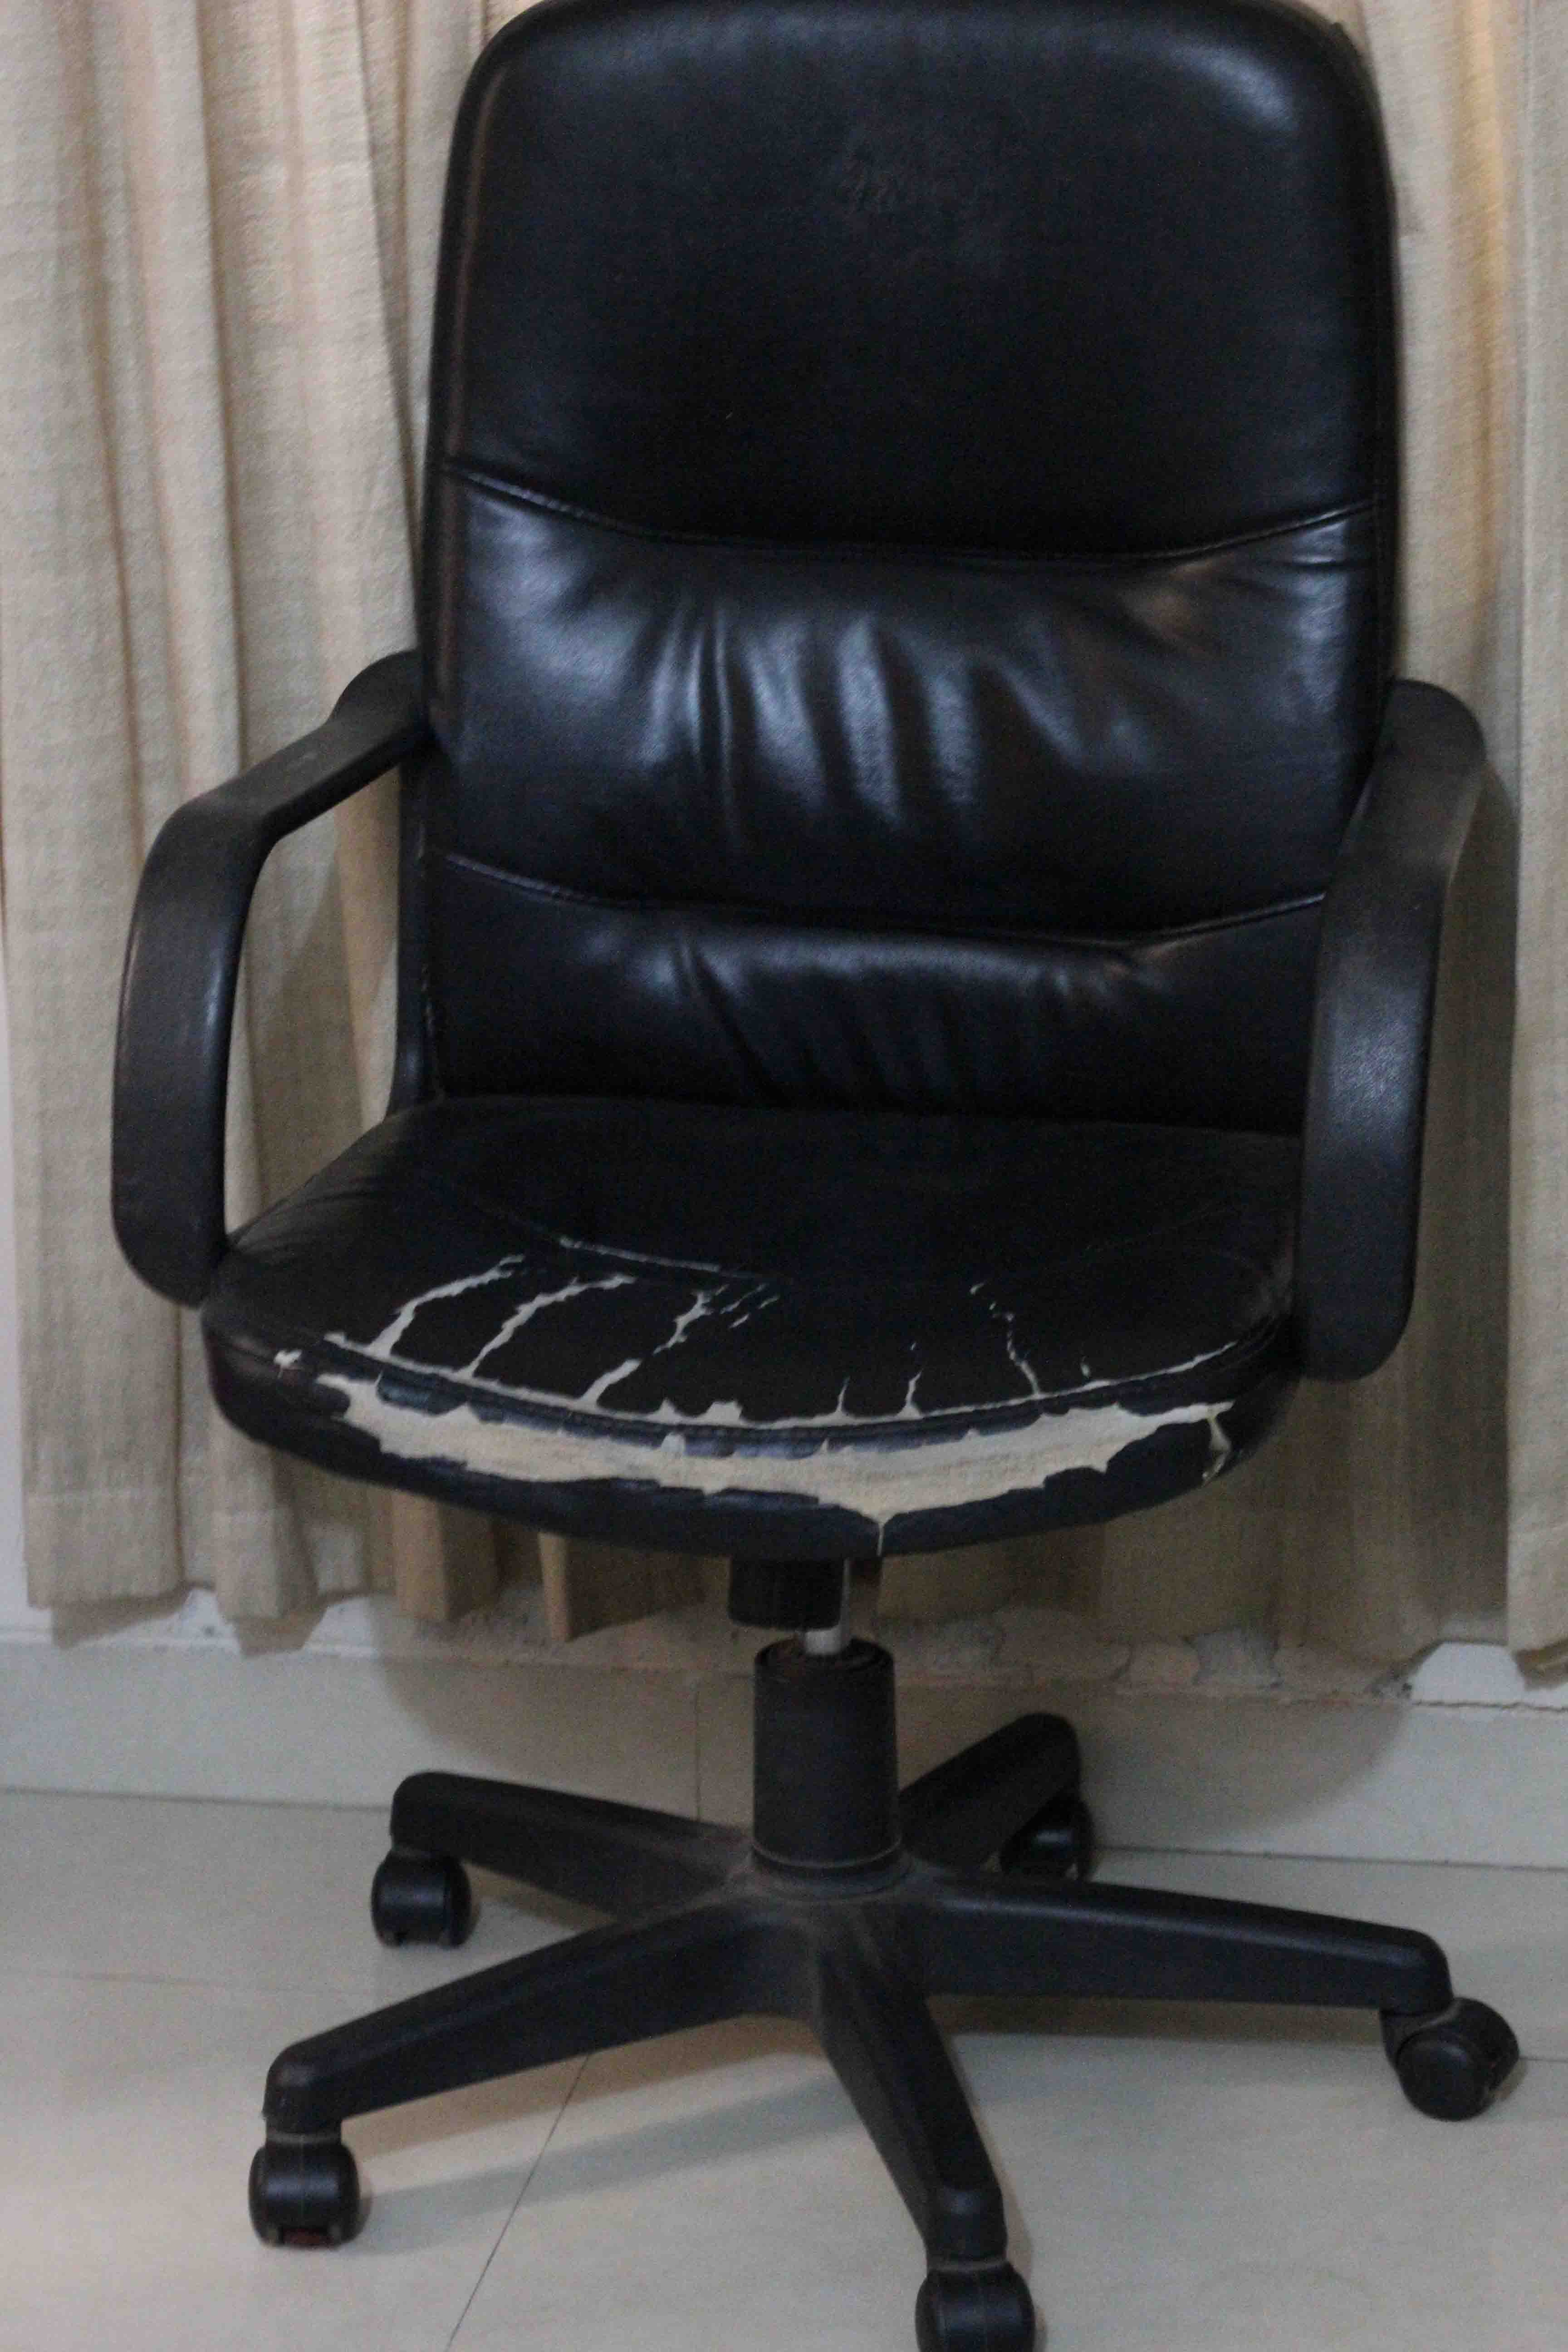 ergonomic chair bangladesh cloth covers home office clickbd